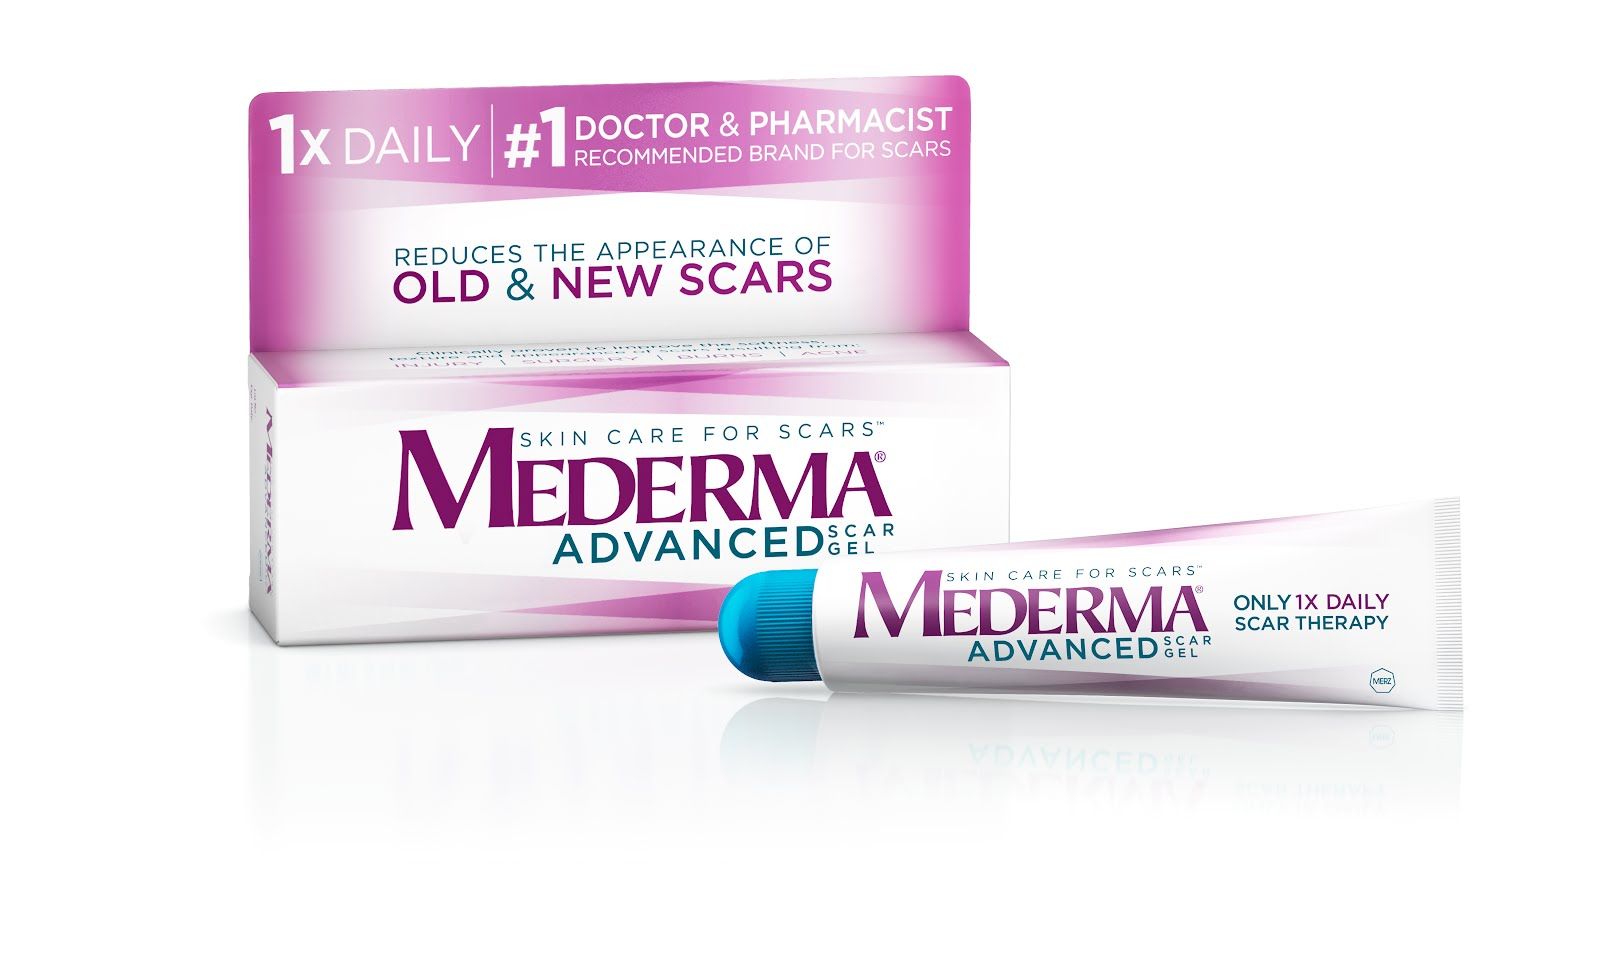 New Mederma Advanced Scar Gel Reduces The Appearance Of Scars